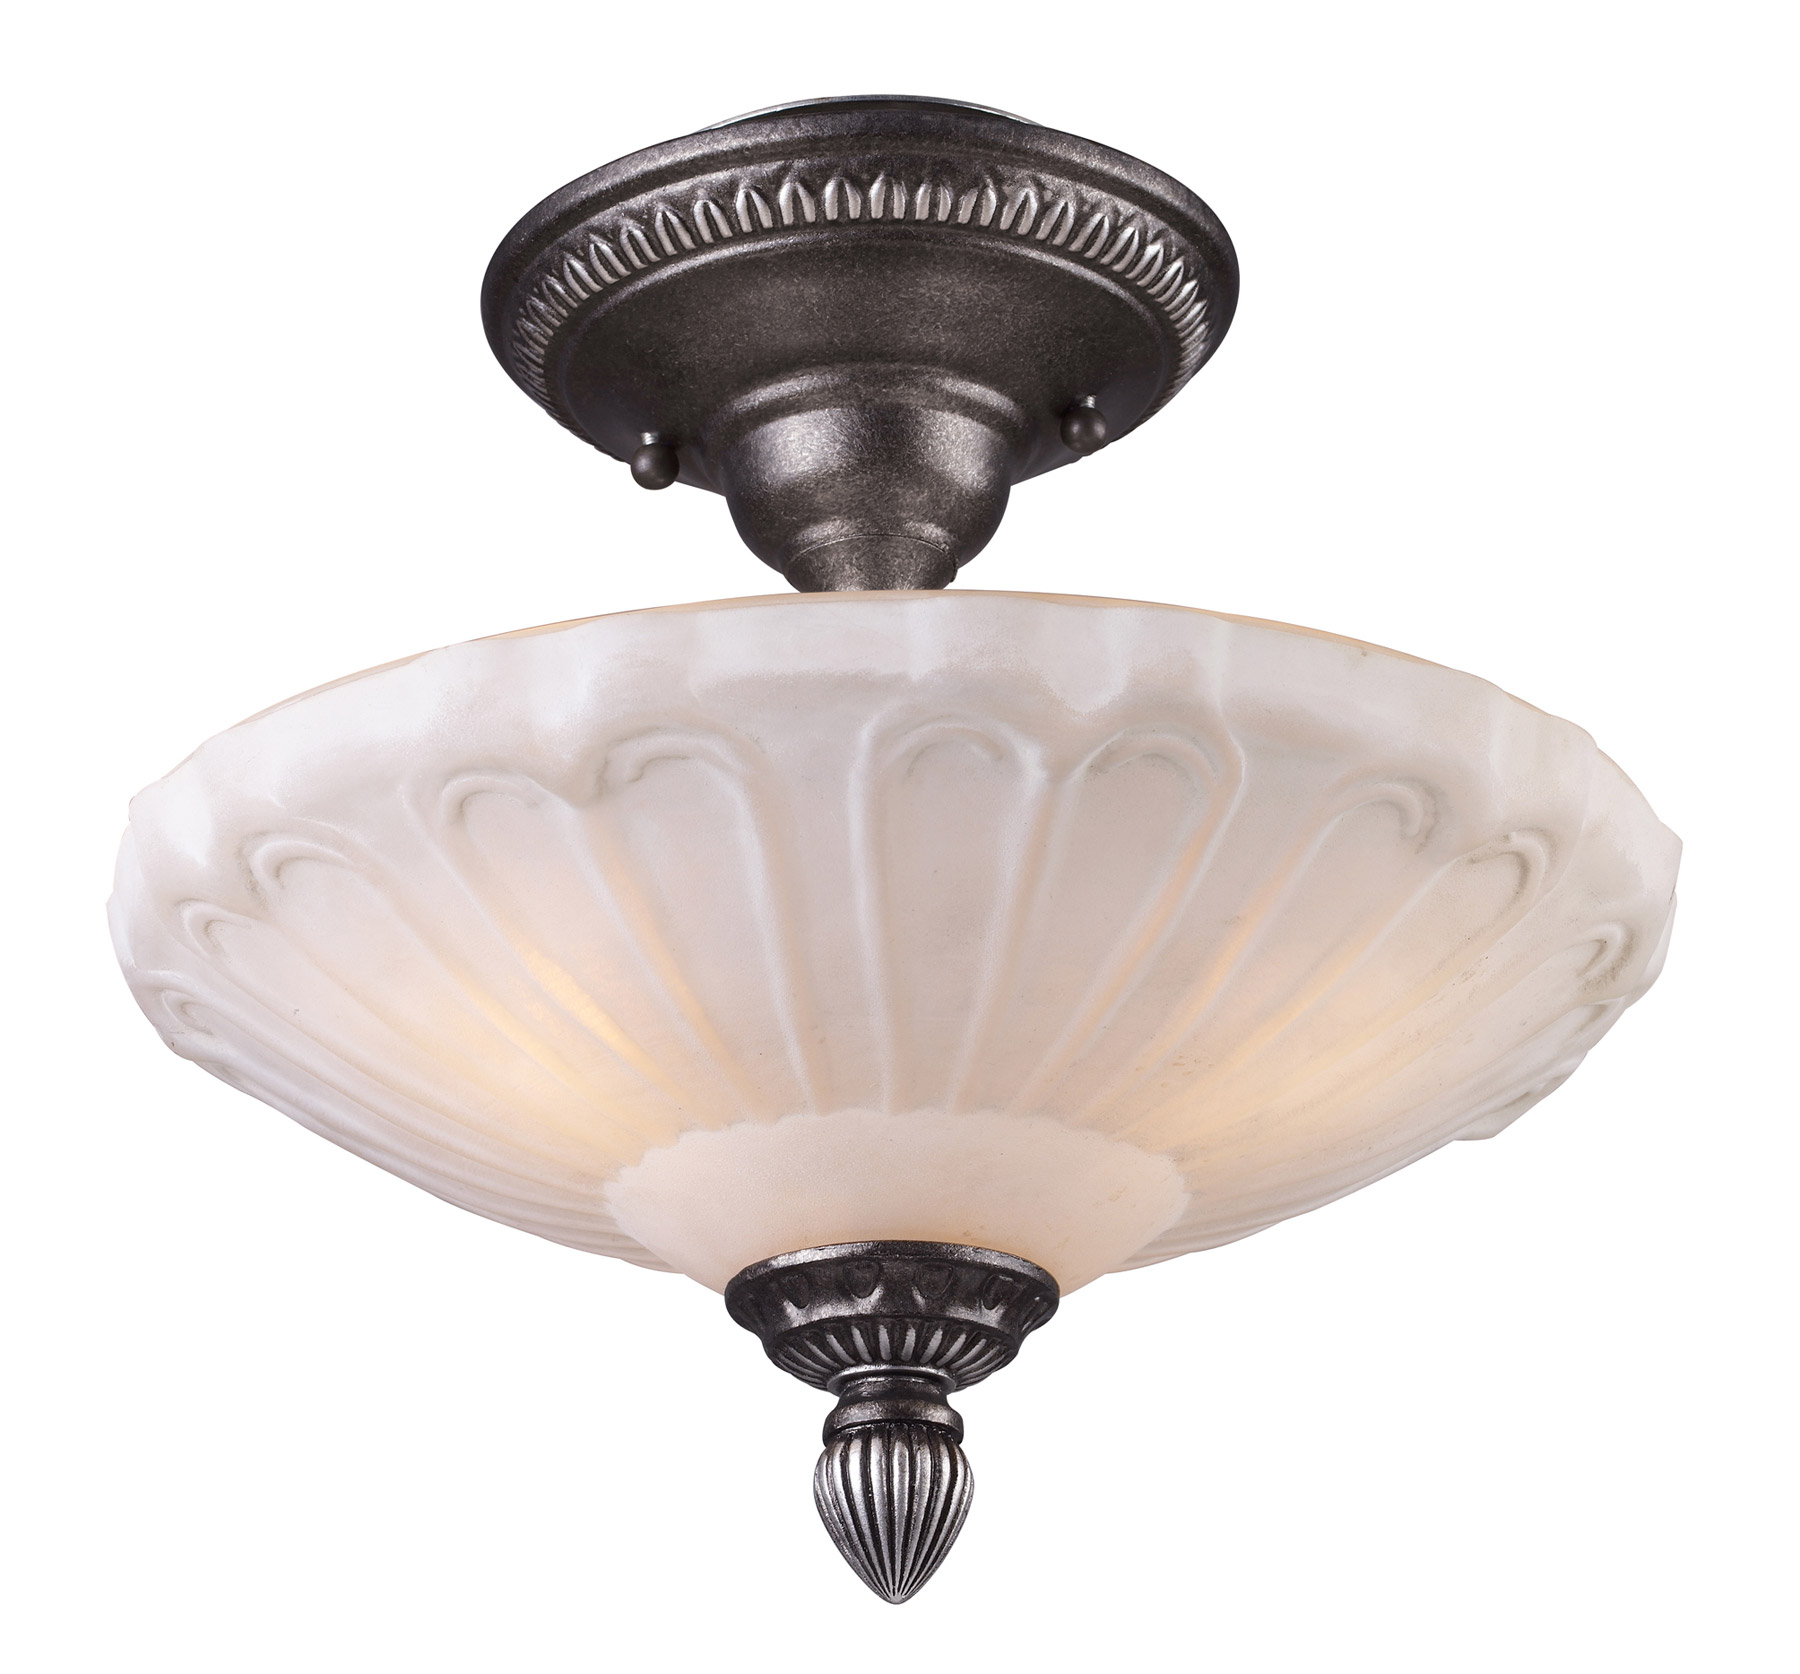 Elk Lighting Fans: Elk Lighting 66092-3 Restoration Semi-Flush Ceiling Fixture